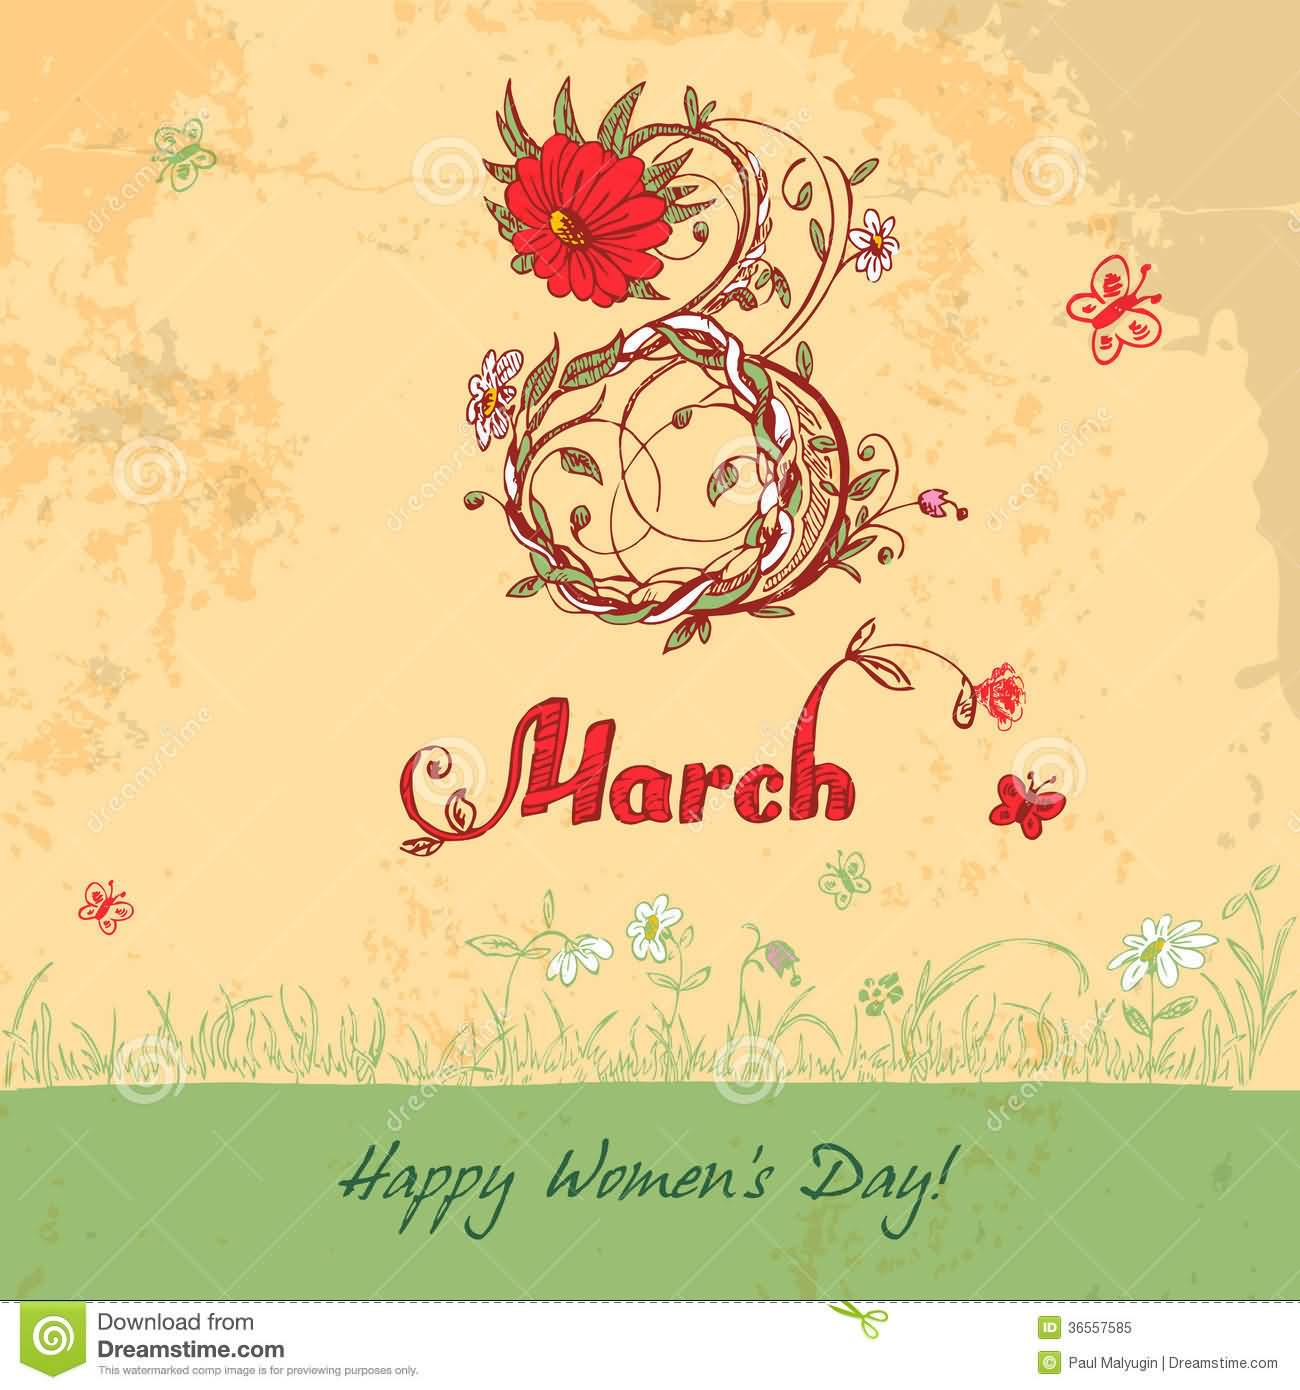 Happy Women's Day Wishes Card Image